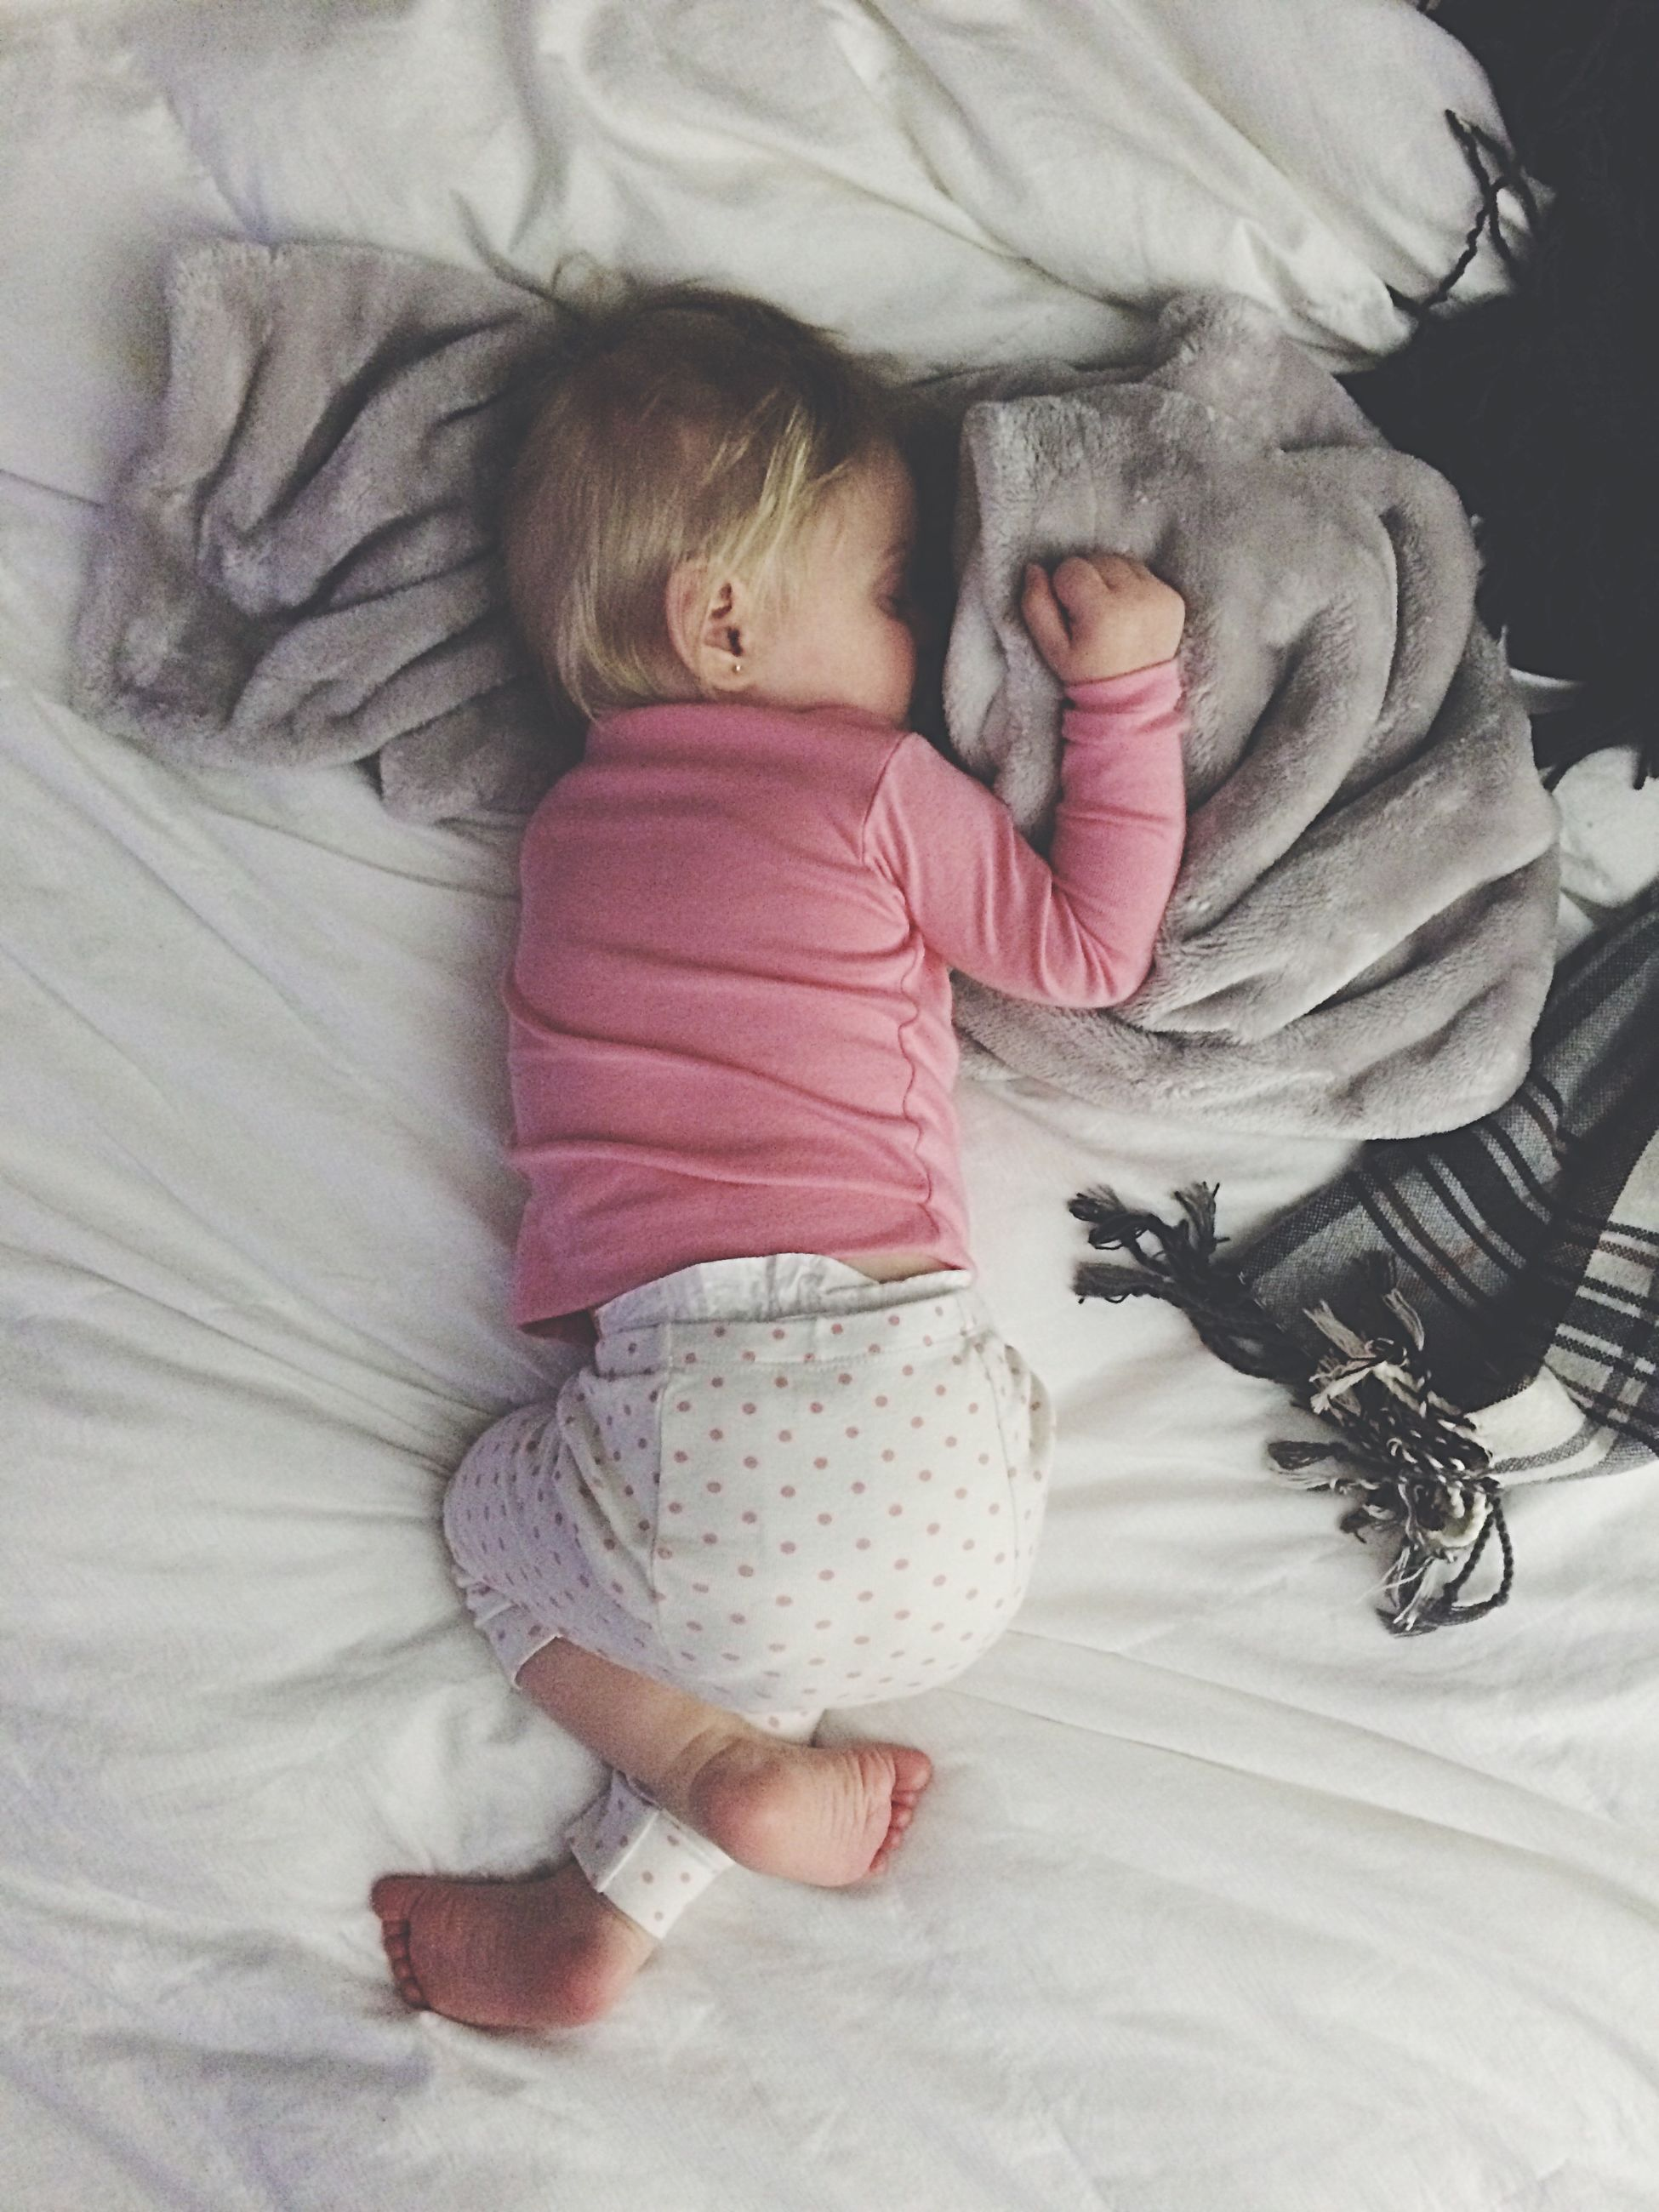 indoors, bed, childhood, lifestyles, holding, baby, relaxation, leisure activity, babyhood, home interior, unknown gender, sleeping, high angle view, toddler, casual clothing, toy, pillow, togetherness